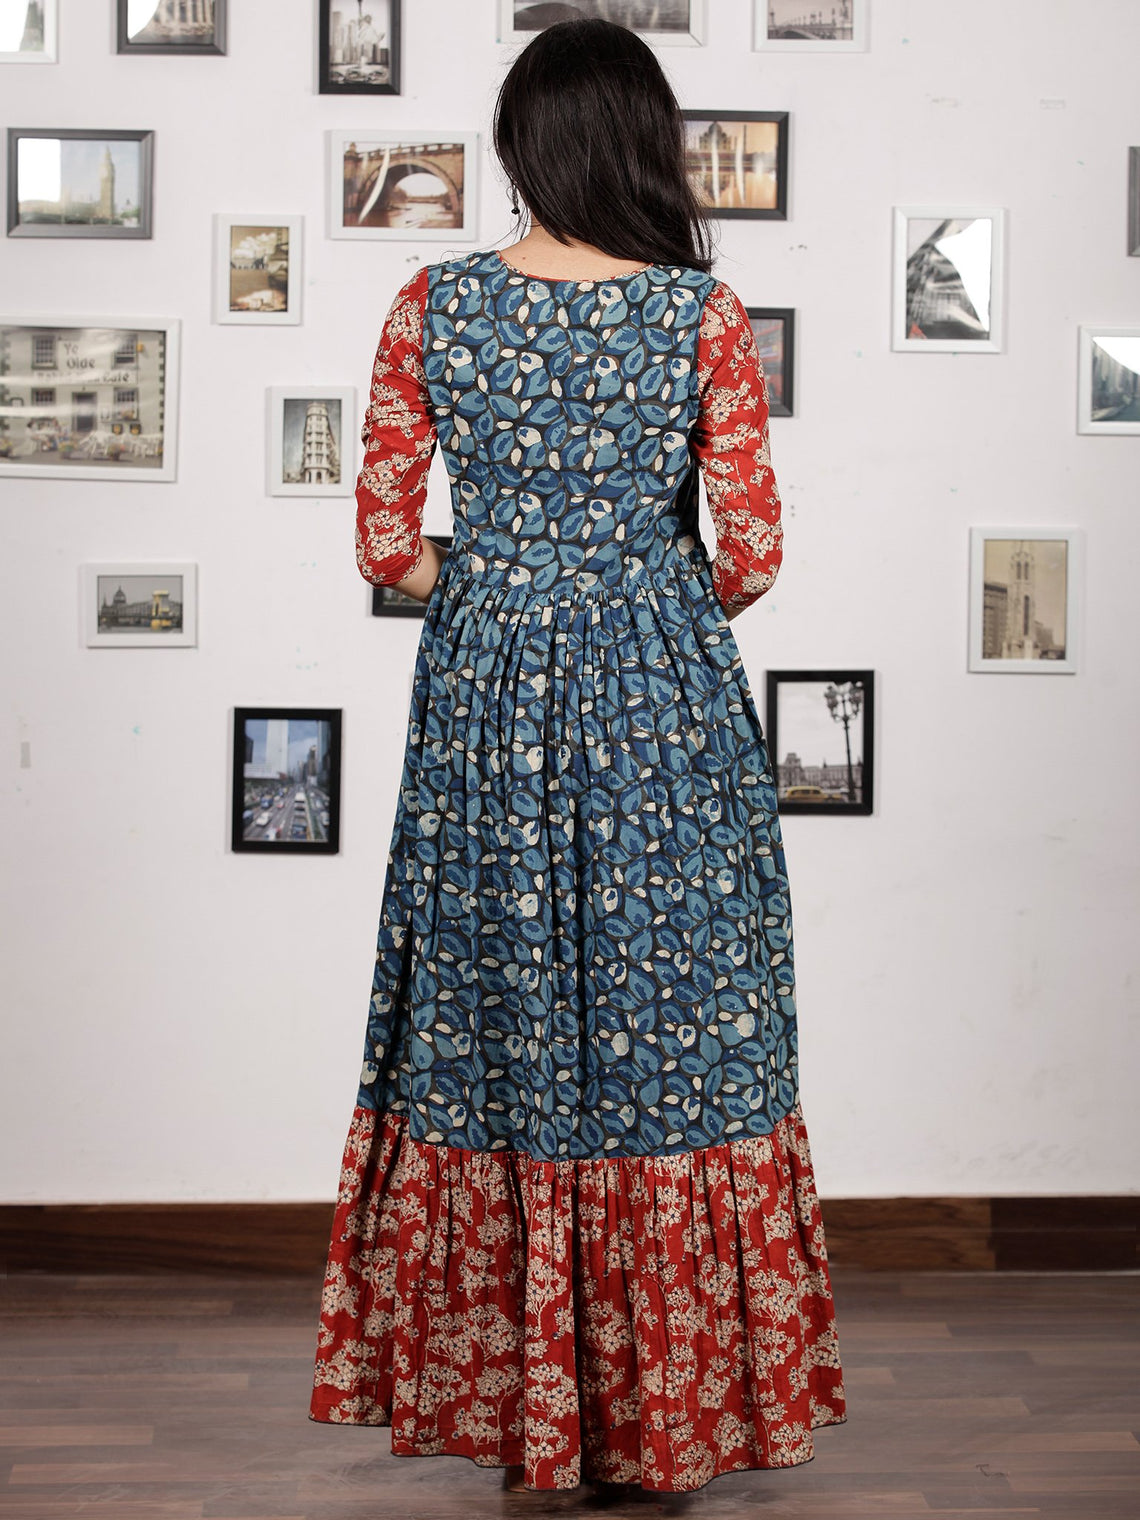 Indigo Black Red White Hand Block Printed Long Cotton Tier Dress - D220F1313